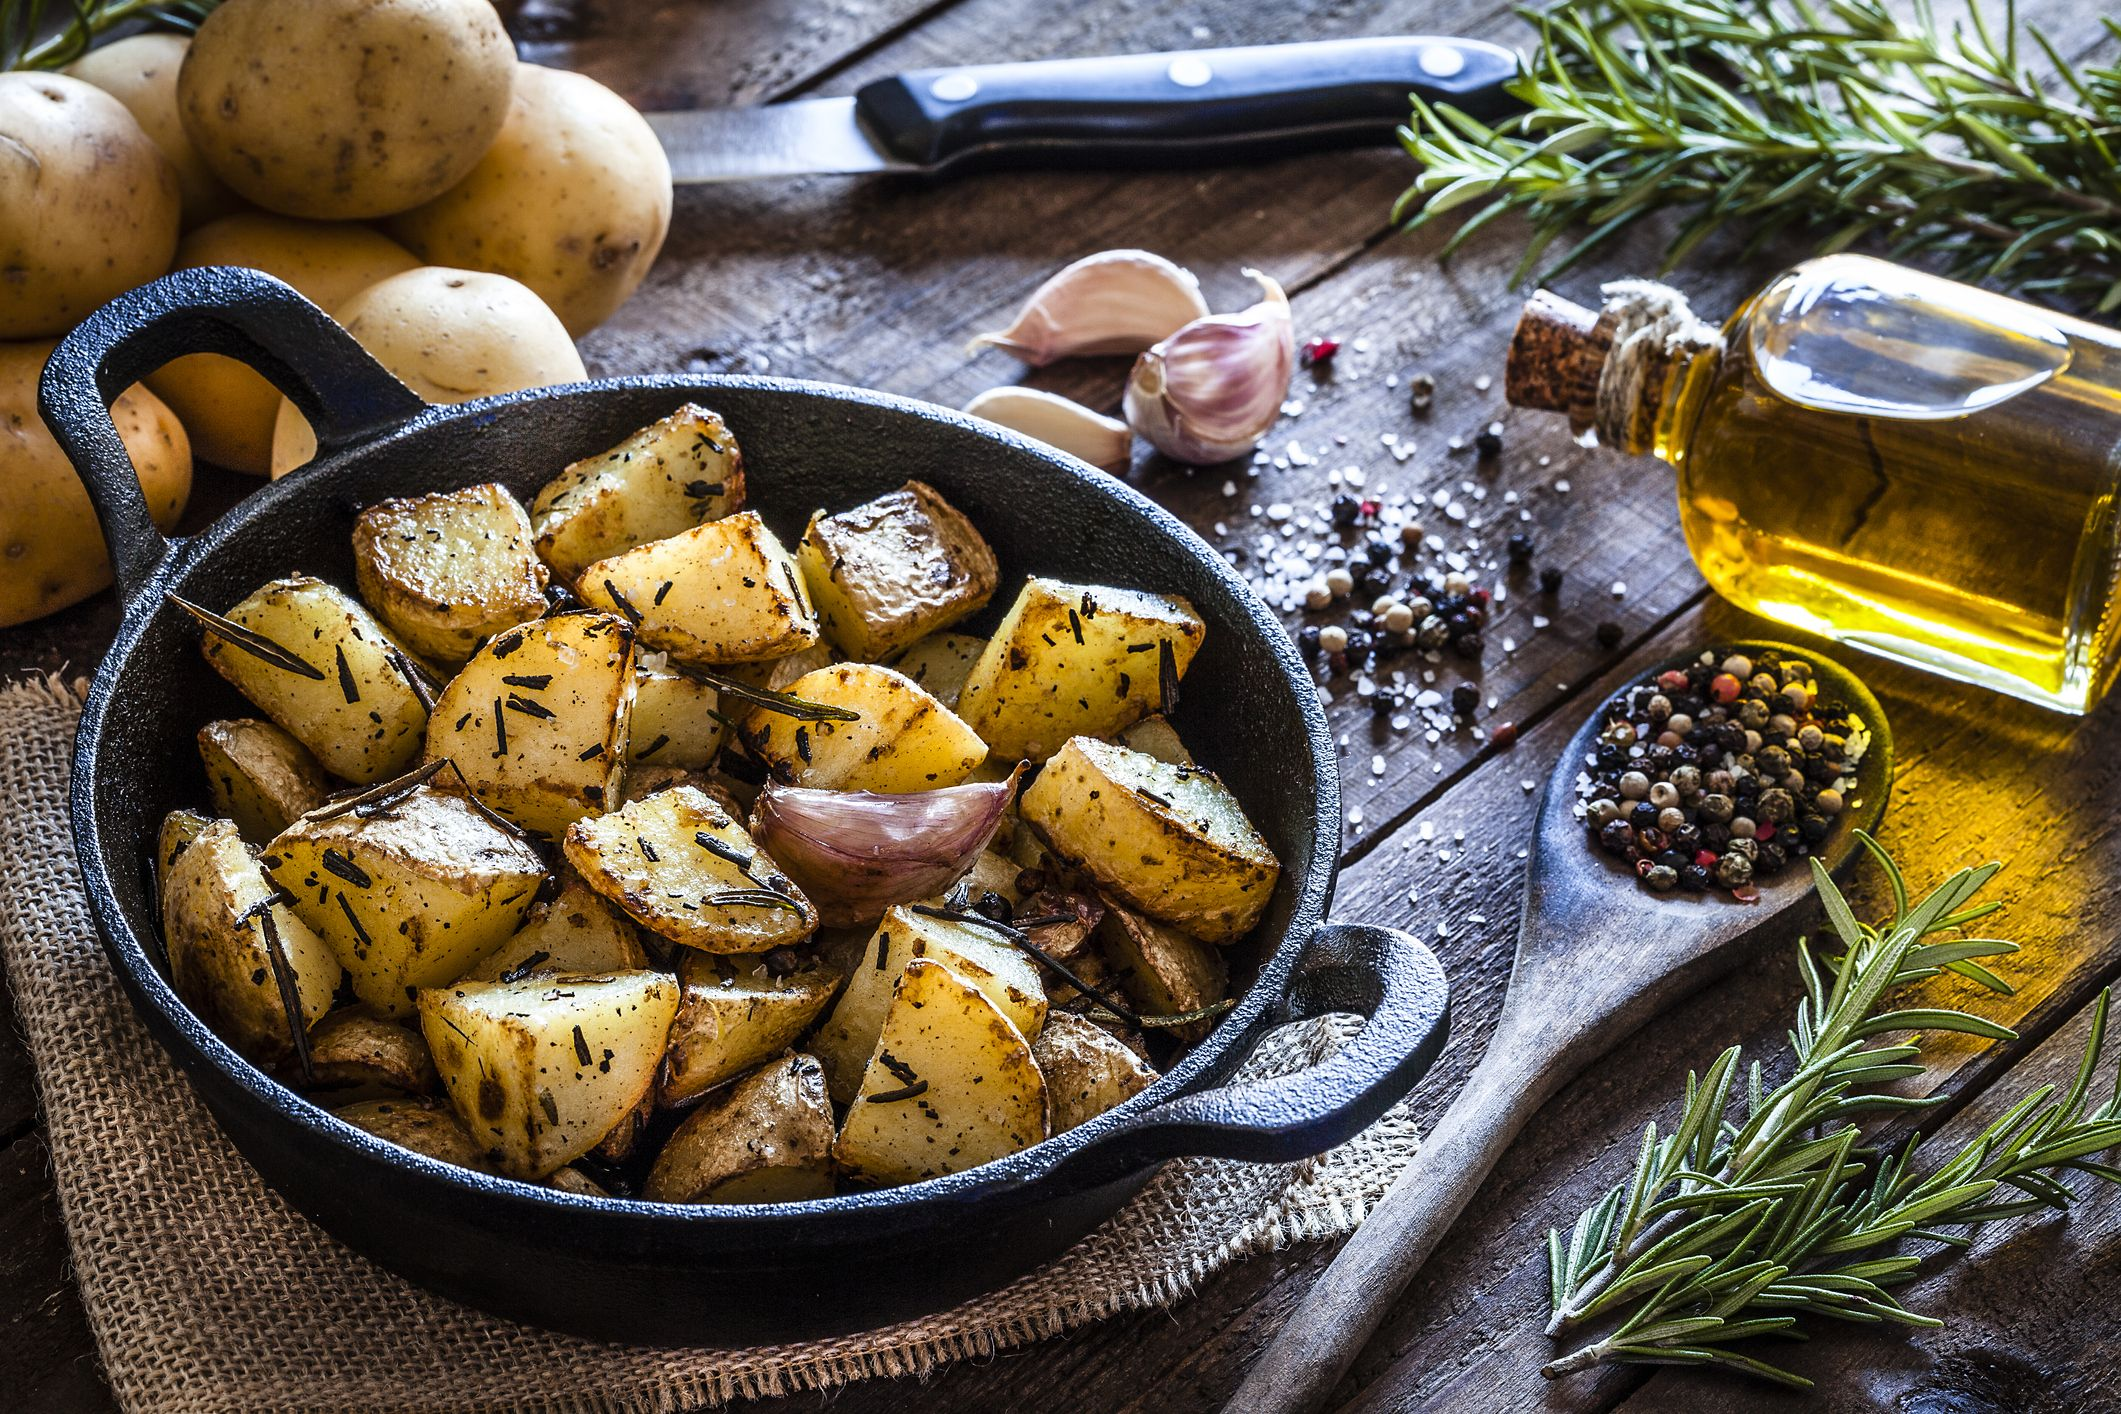 Are Potatoes Paleo? Not Always, Say Experts.